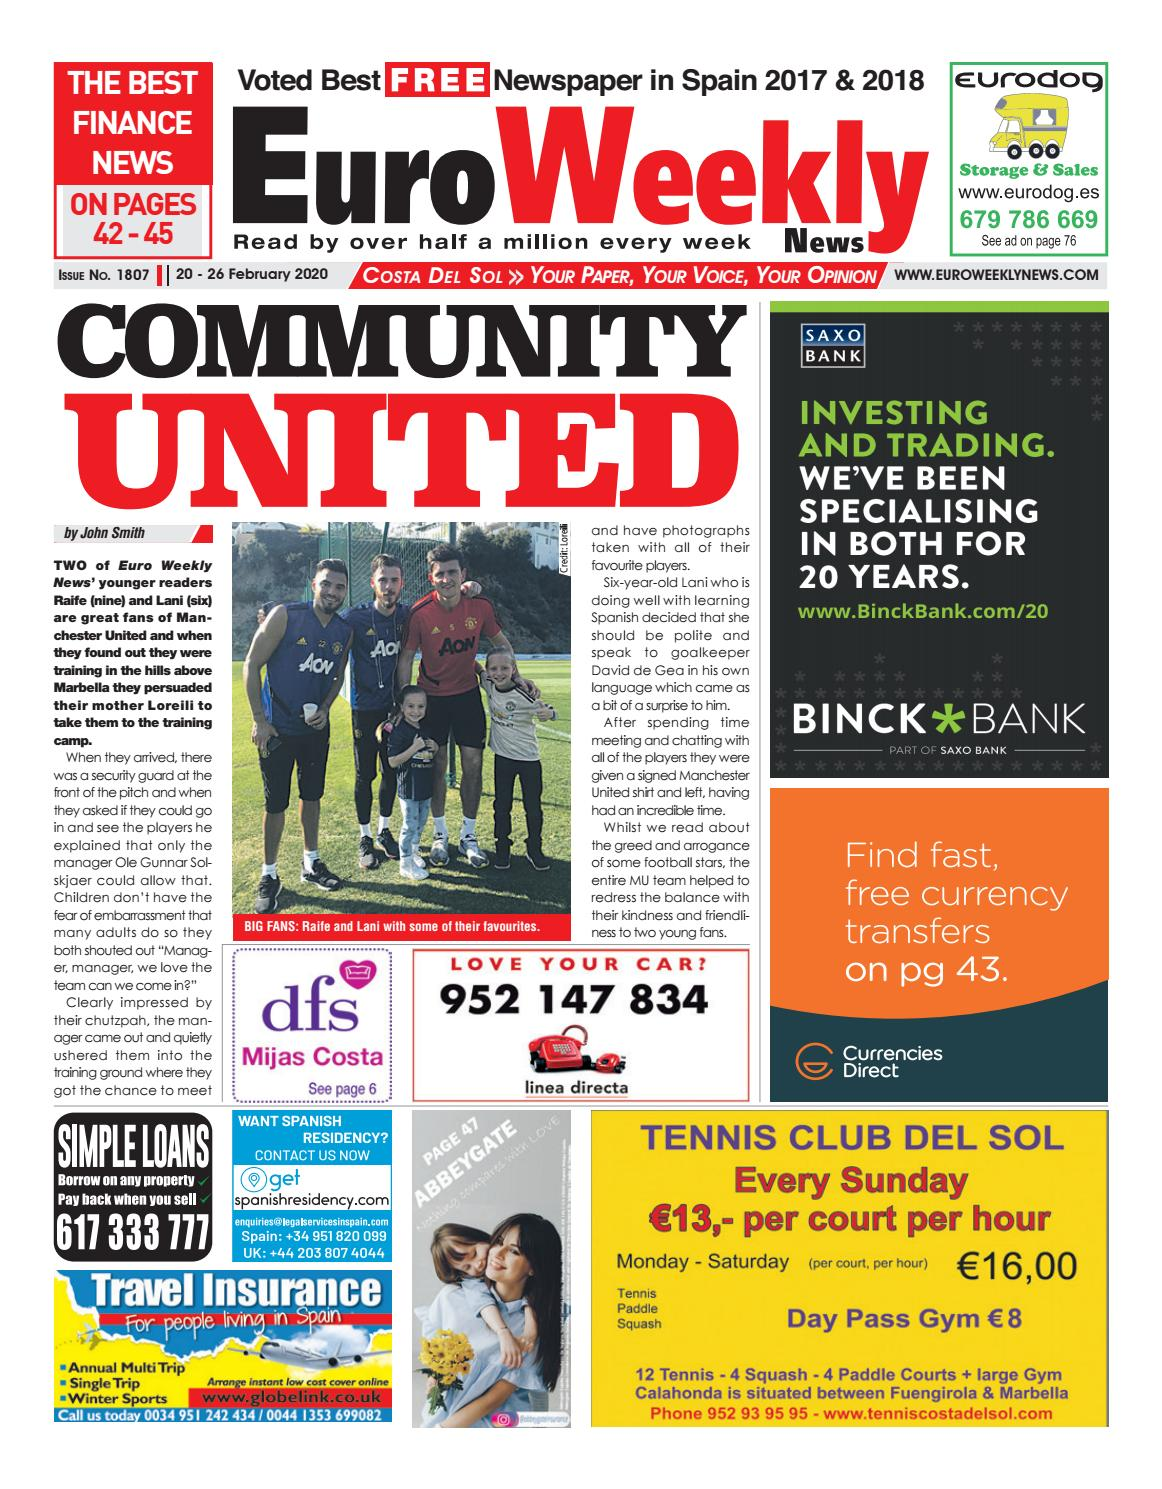 Euro Weekly News Costa Del Sol 20 26 February 2020 Issue 1807